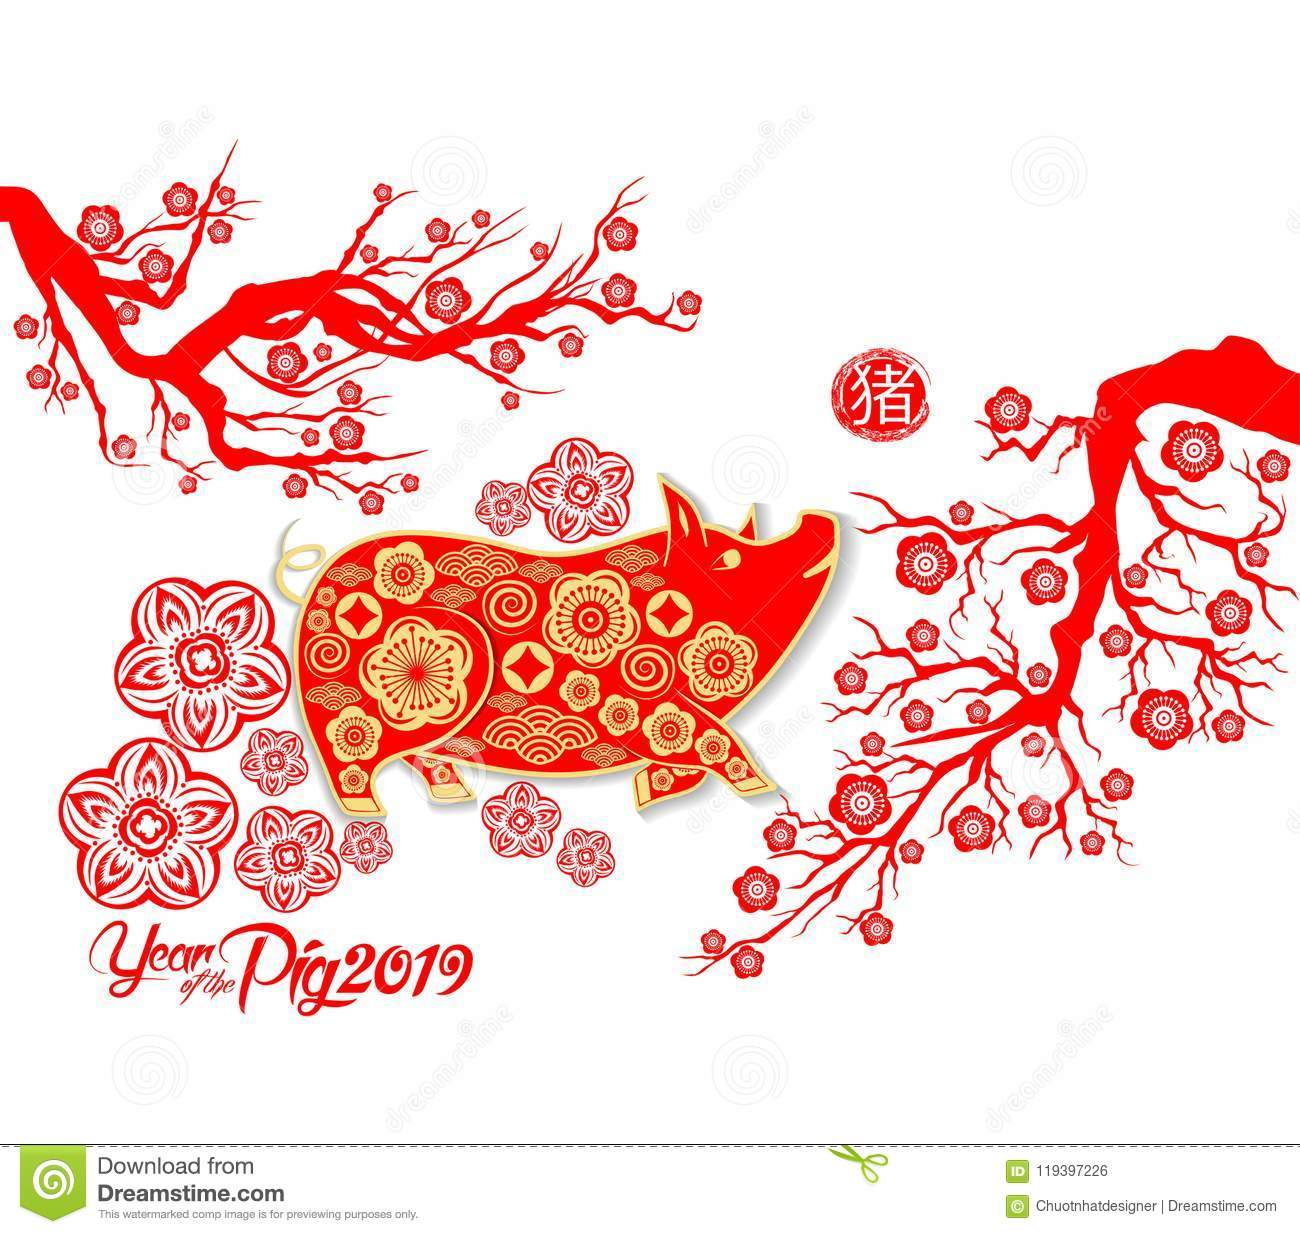 Happy Chinese new year 2019 card year of pig hieroglyph: Pig